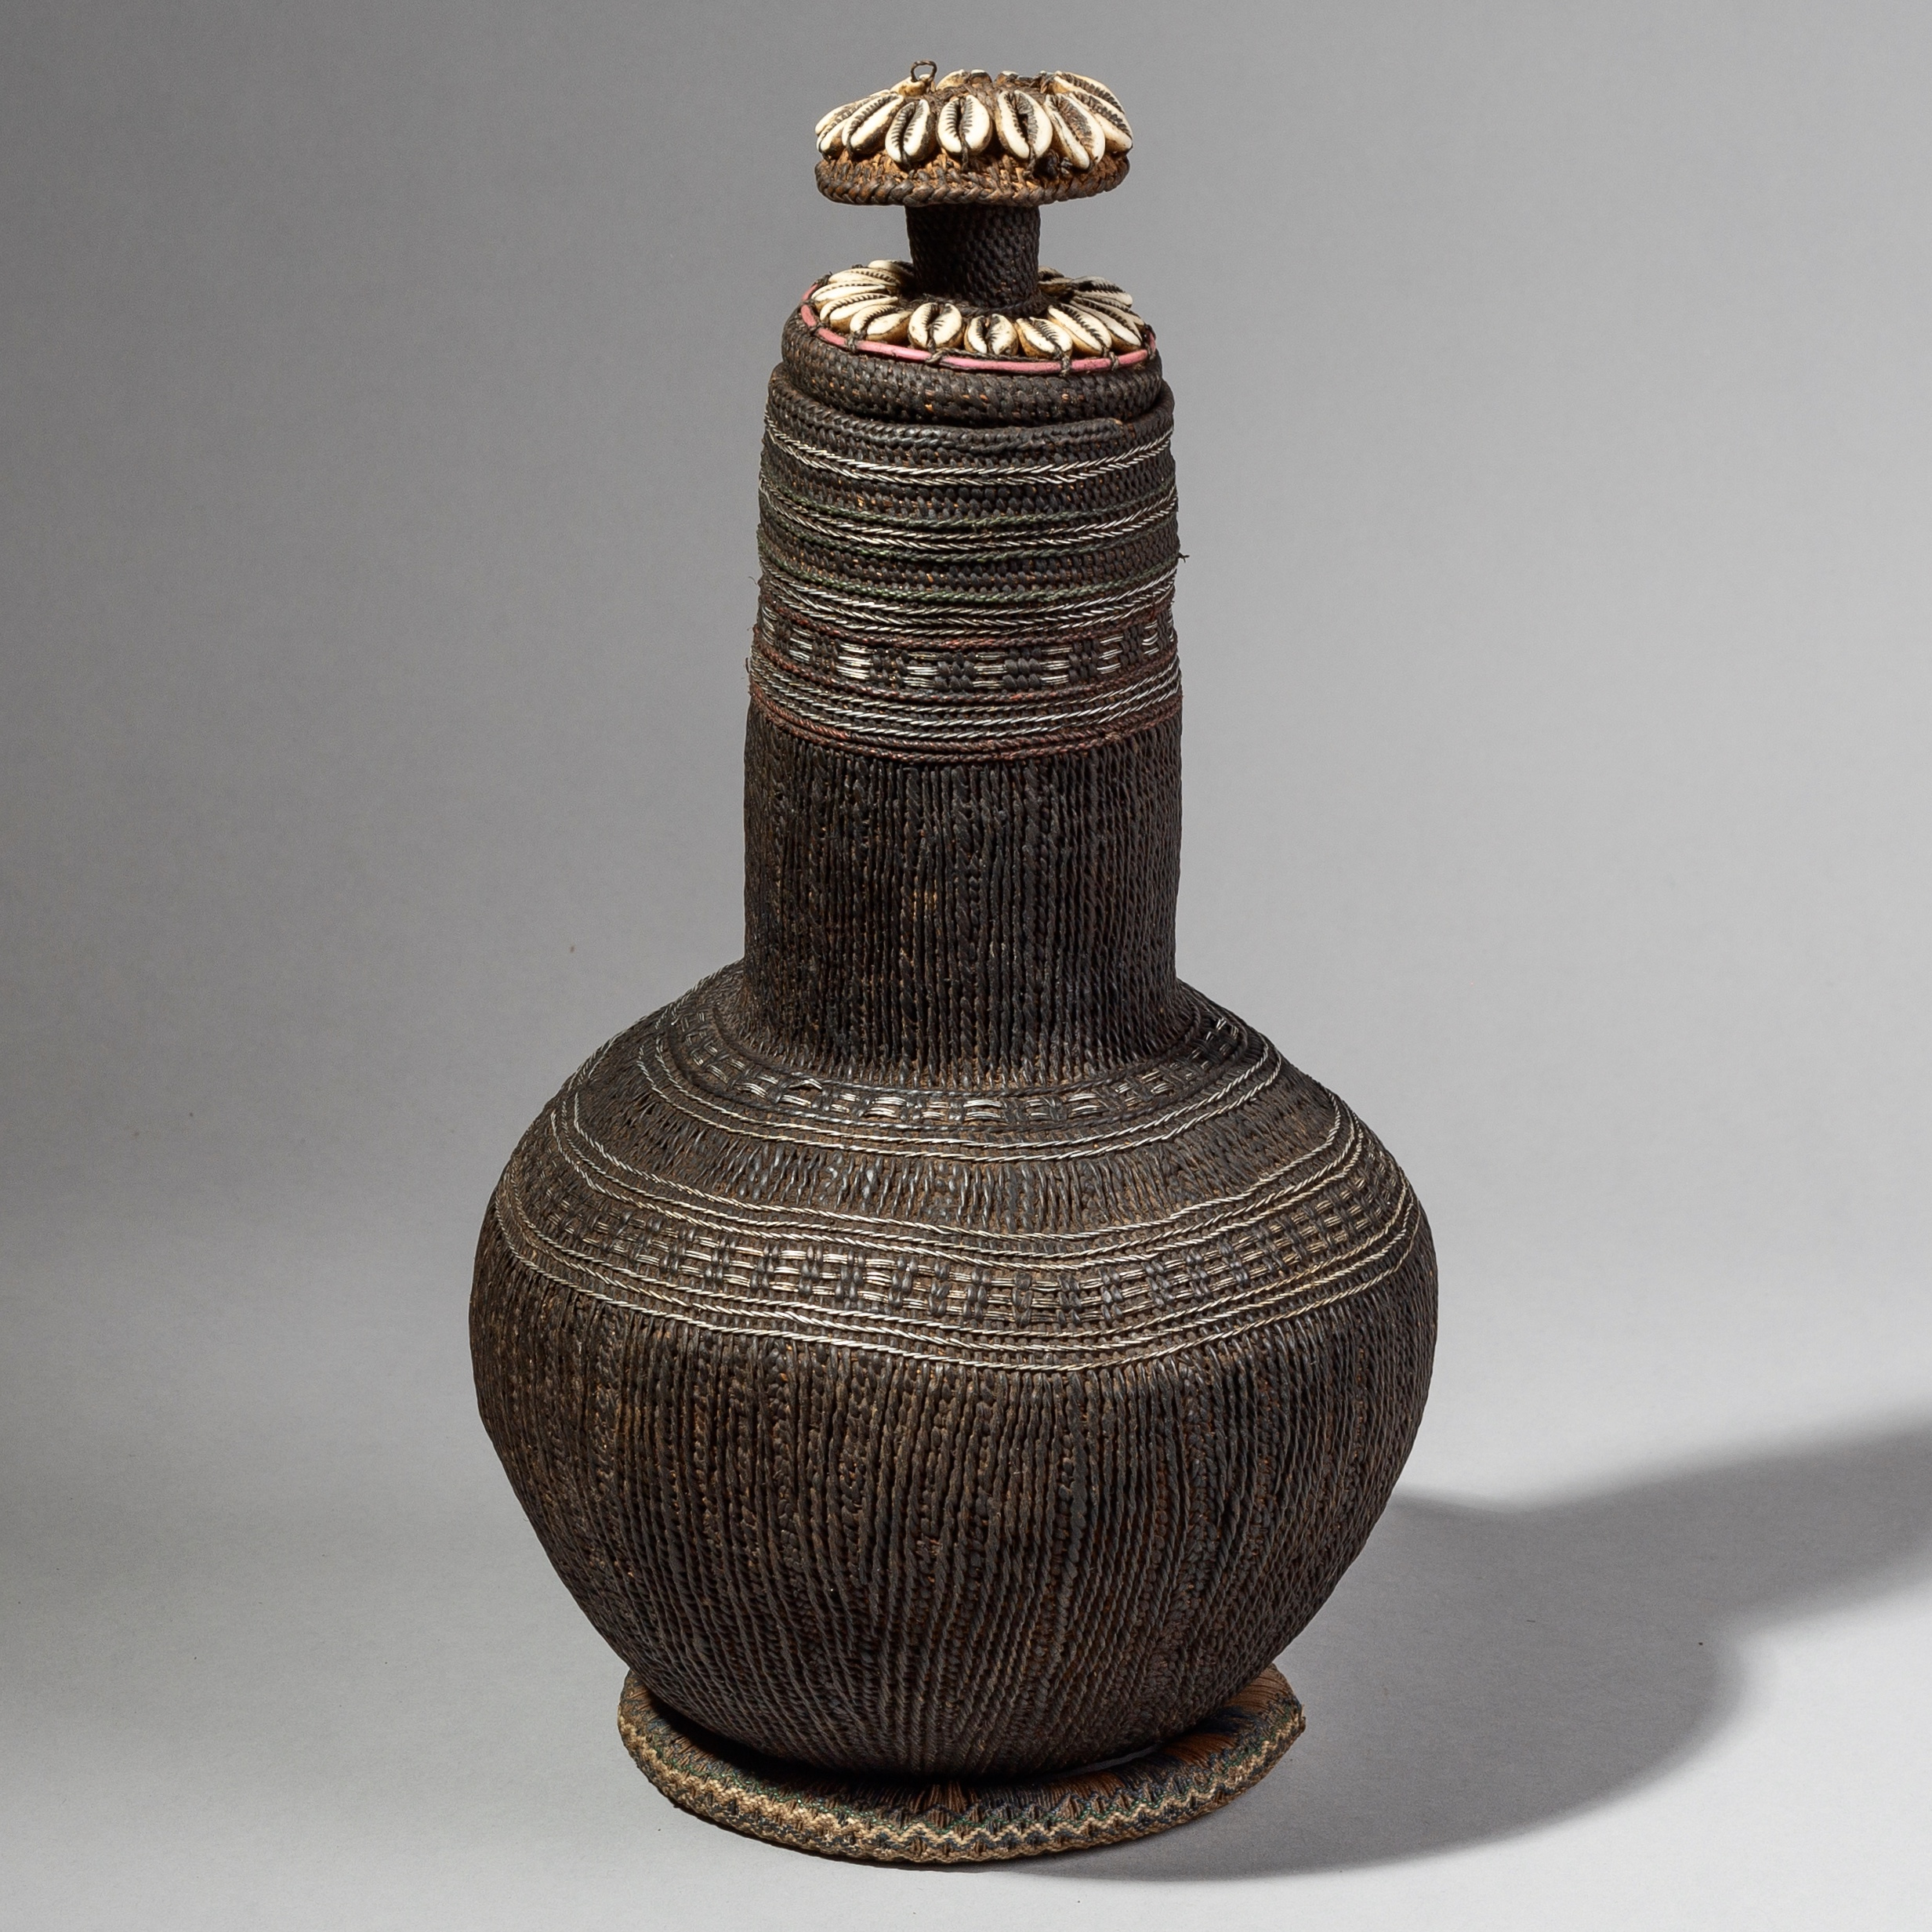 A SHAPELY + FINE BORANA WOVEN BASKET FROM ETHIOPIA ( No 1685 )